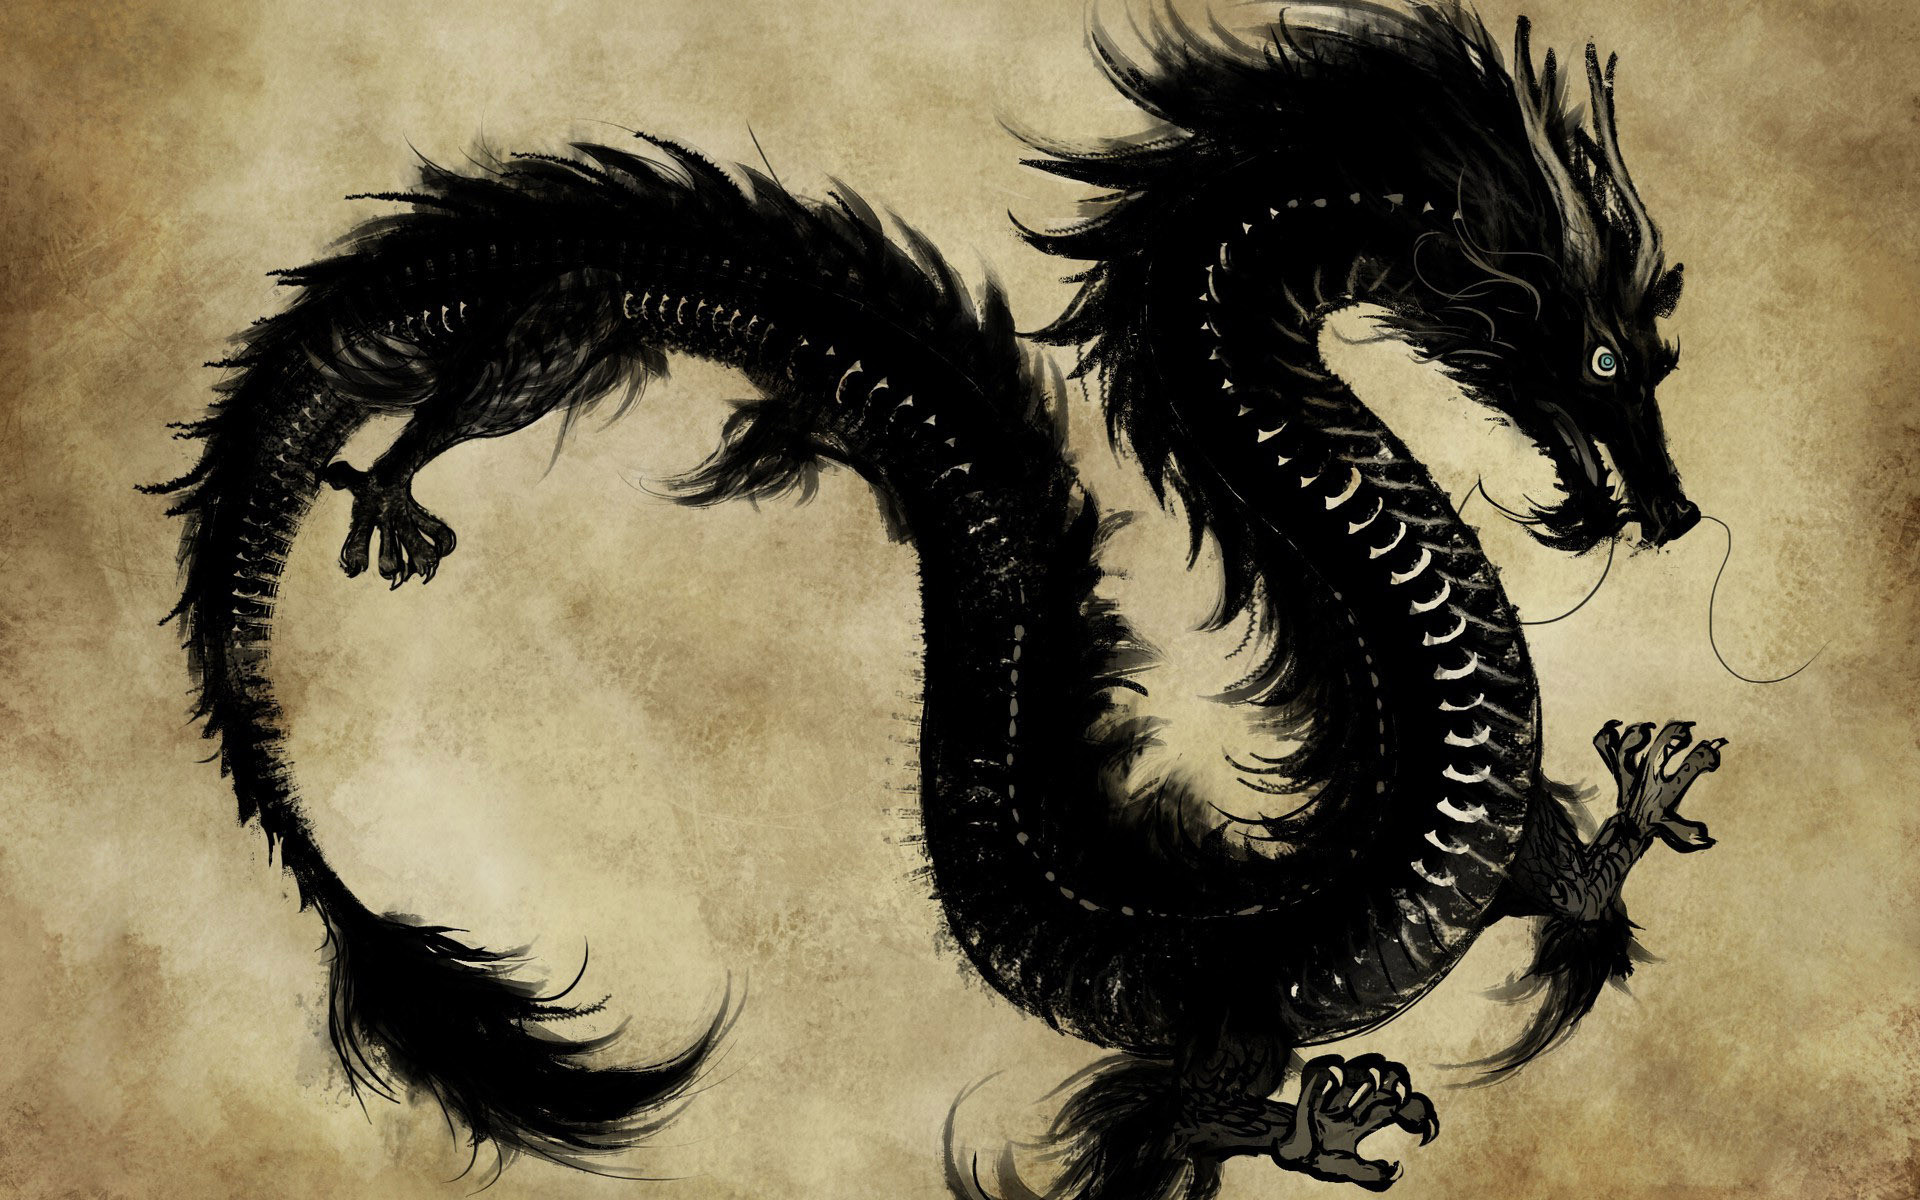 1920x1200 D Dragon Wallpaper Download D Dragon Wallpaper . Android | HD Wallpapers |  Pinterest | Wallpaper downloads, Hd wallpaper and Wallpapers android